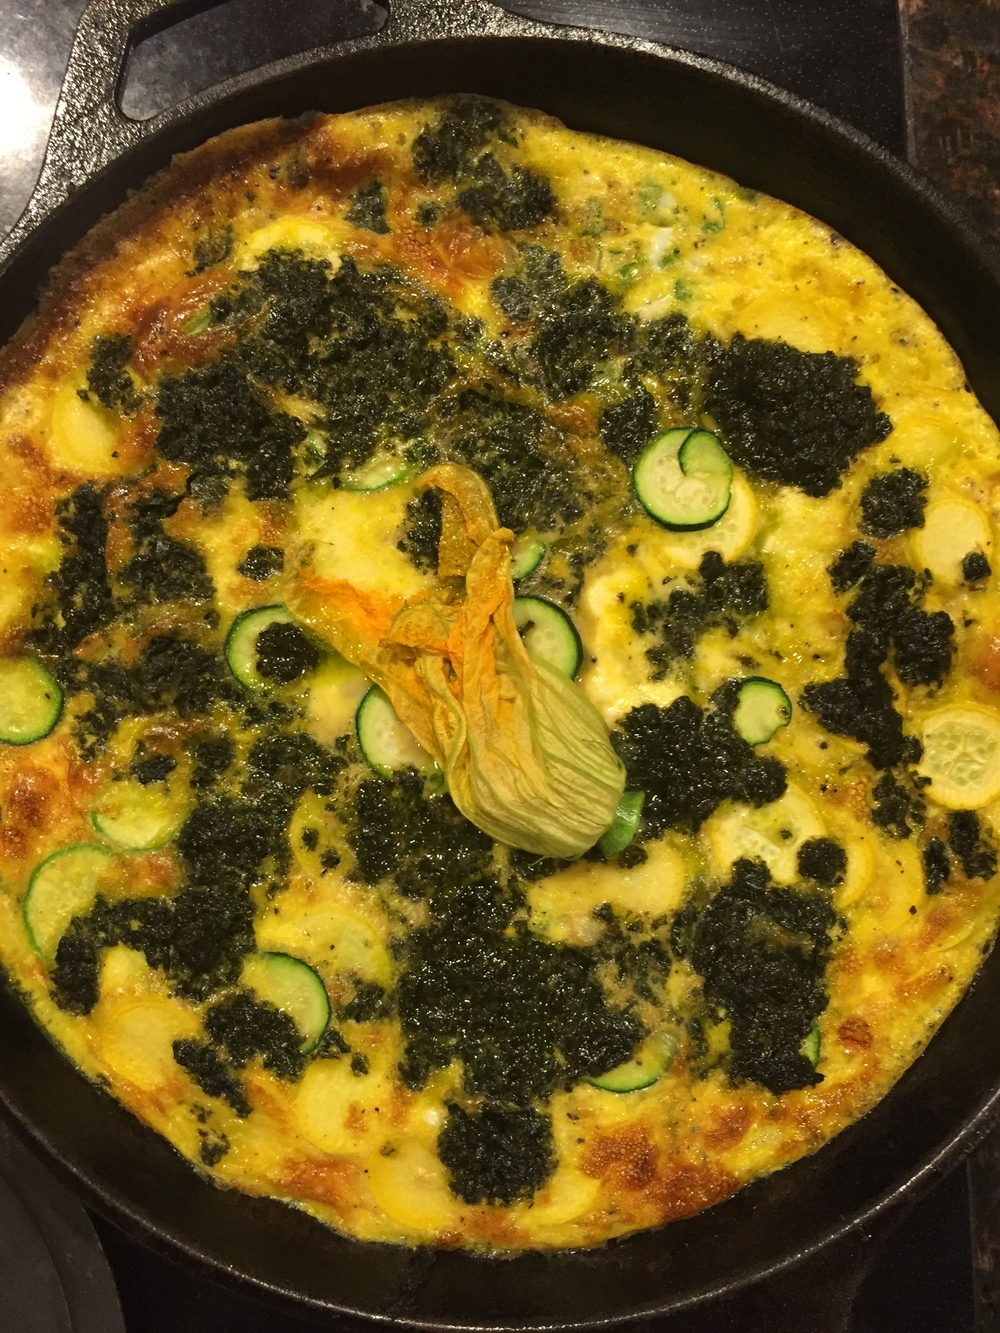 Squash, zucchini, homemade cheese, garlic scape frittata with pesto and a squash blossom on top.